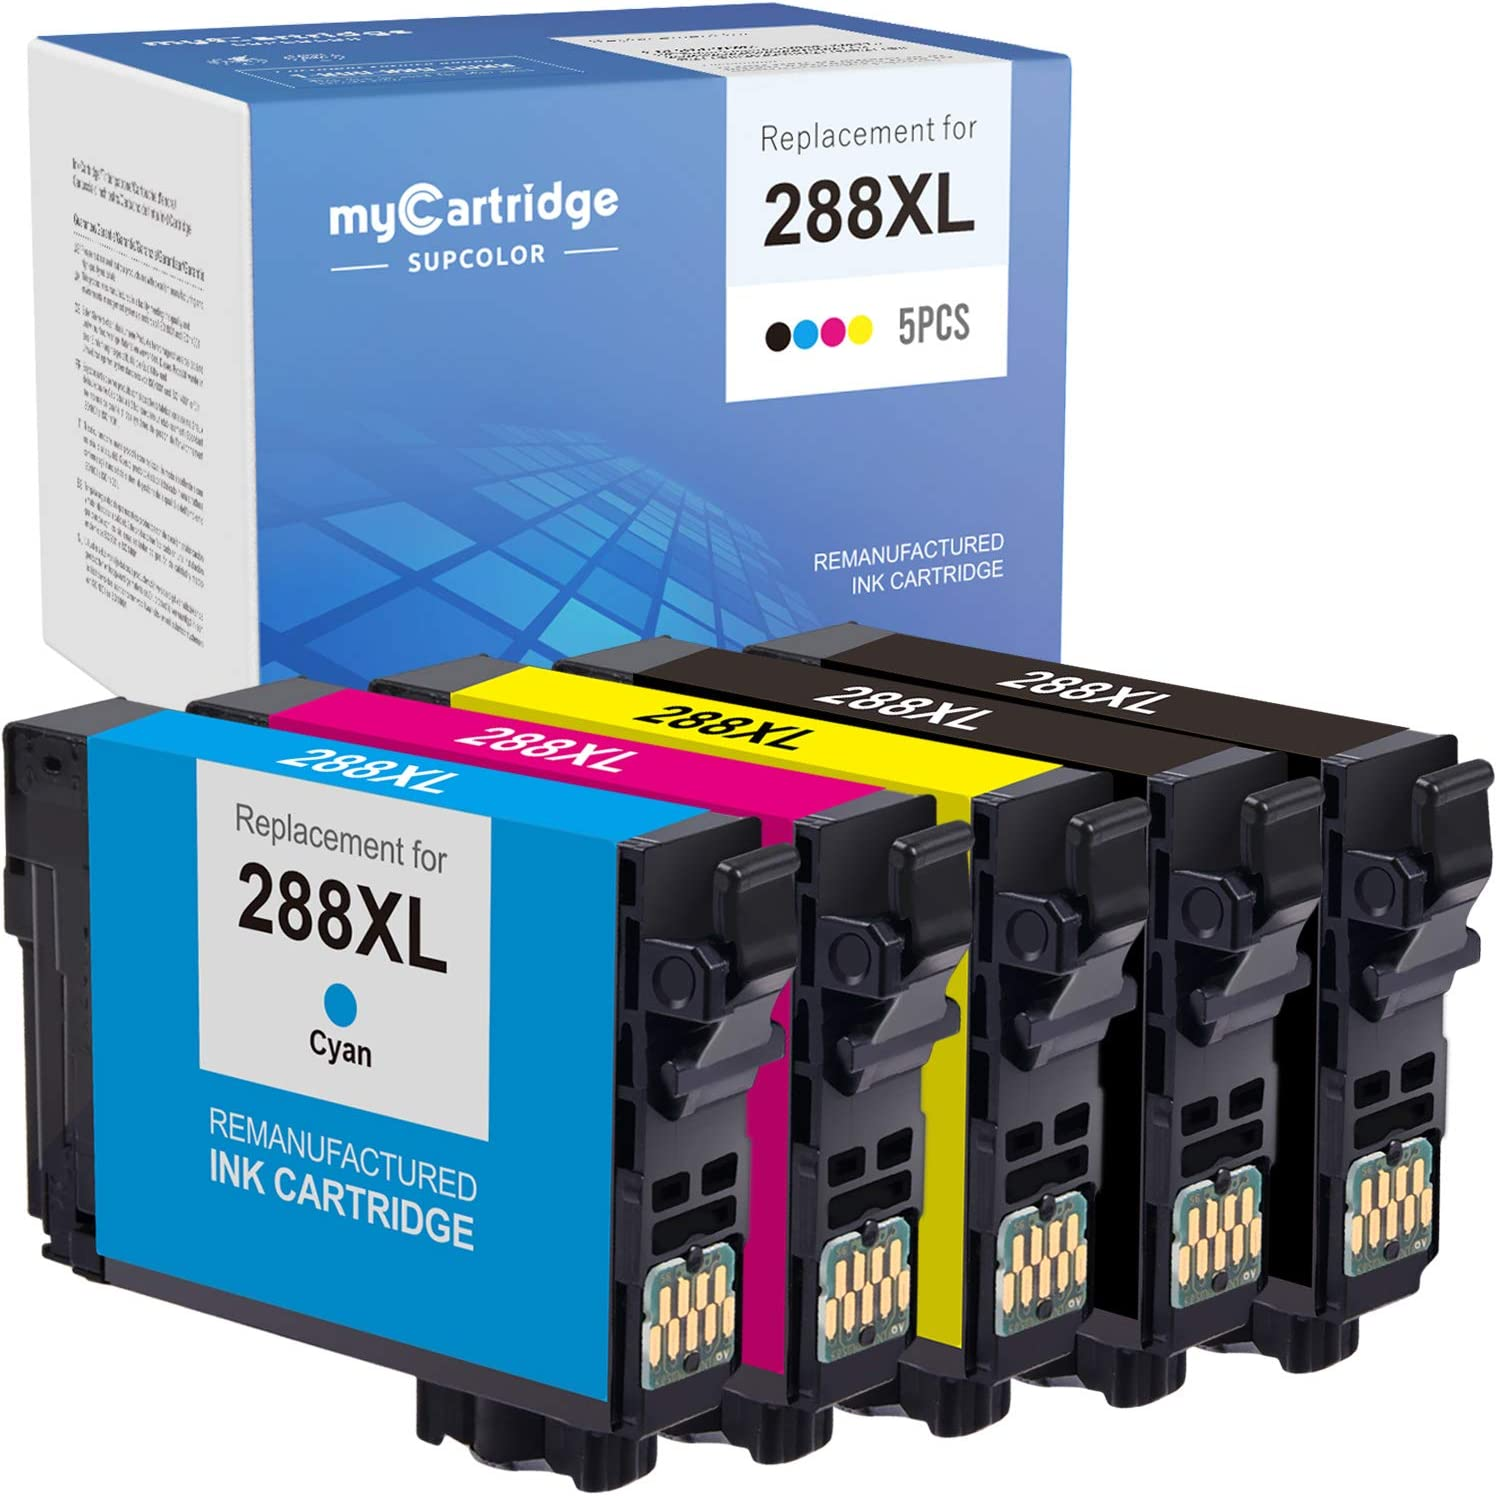 myCartridge SUPCOLOR Remanufactured Ink Cartridge Replacement for Epson 288 XL 288XL T288XL High Yield for Expression Home XP-330 XP-340 XP-430 XP-440 XP-446 XP-434 (Black Cyan Magenta Yellow, 5-Pack)